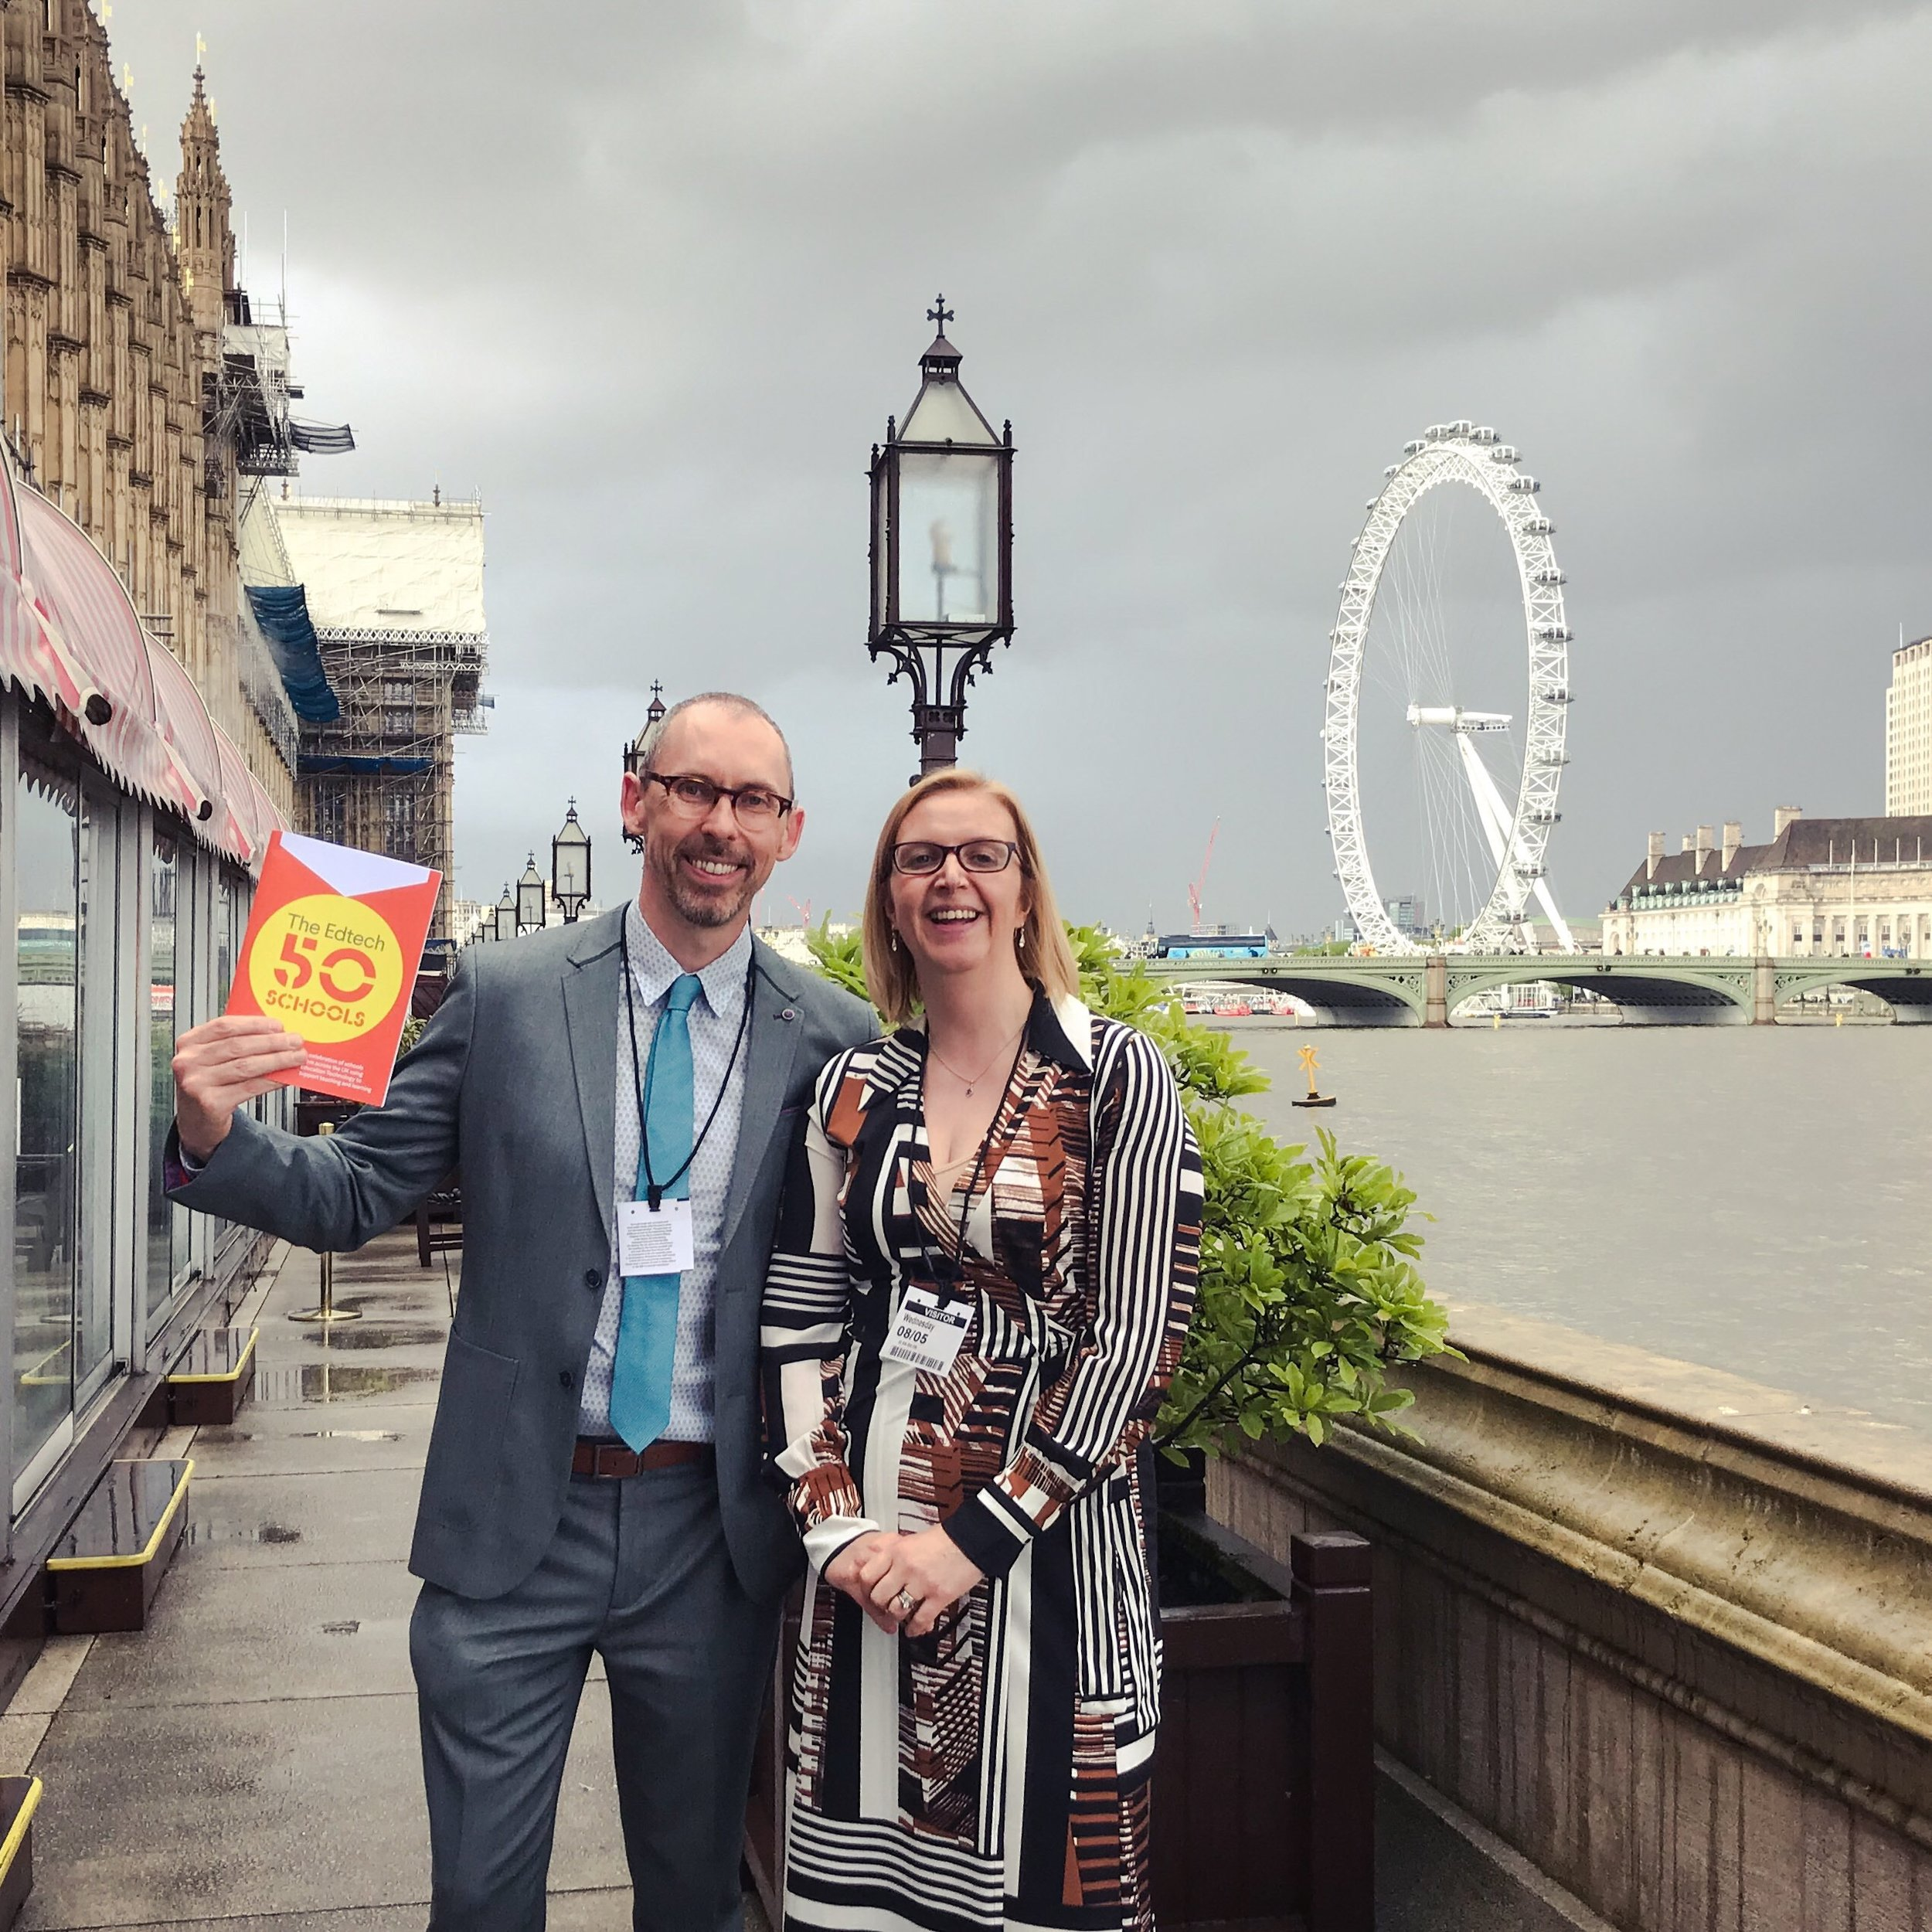 Spencer, our Head of Marketing and Claire Crichton-Allen from Matthew Moss High School at the House of Lords for the EdTech 50 launch event.